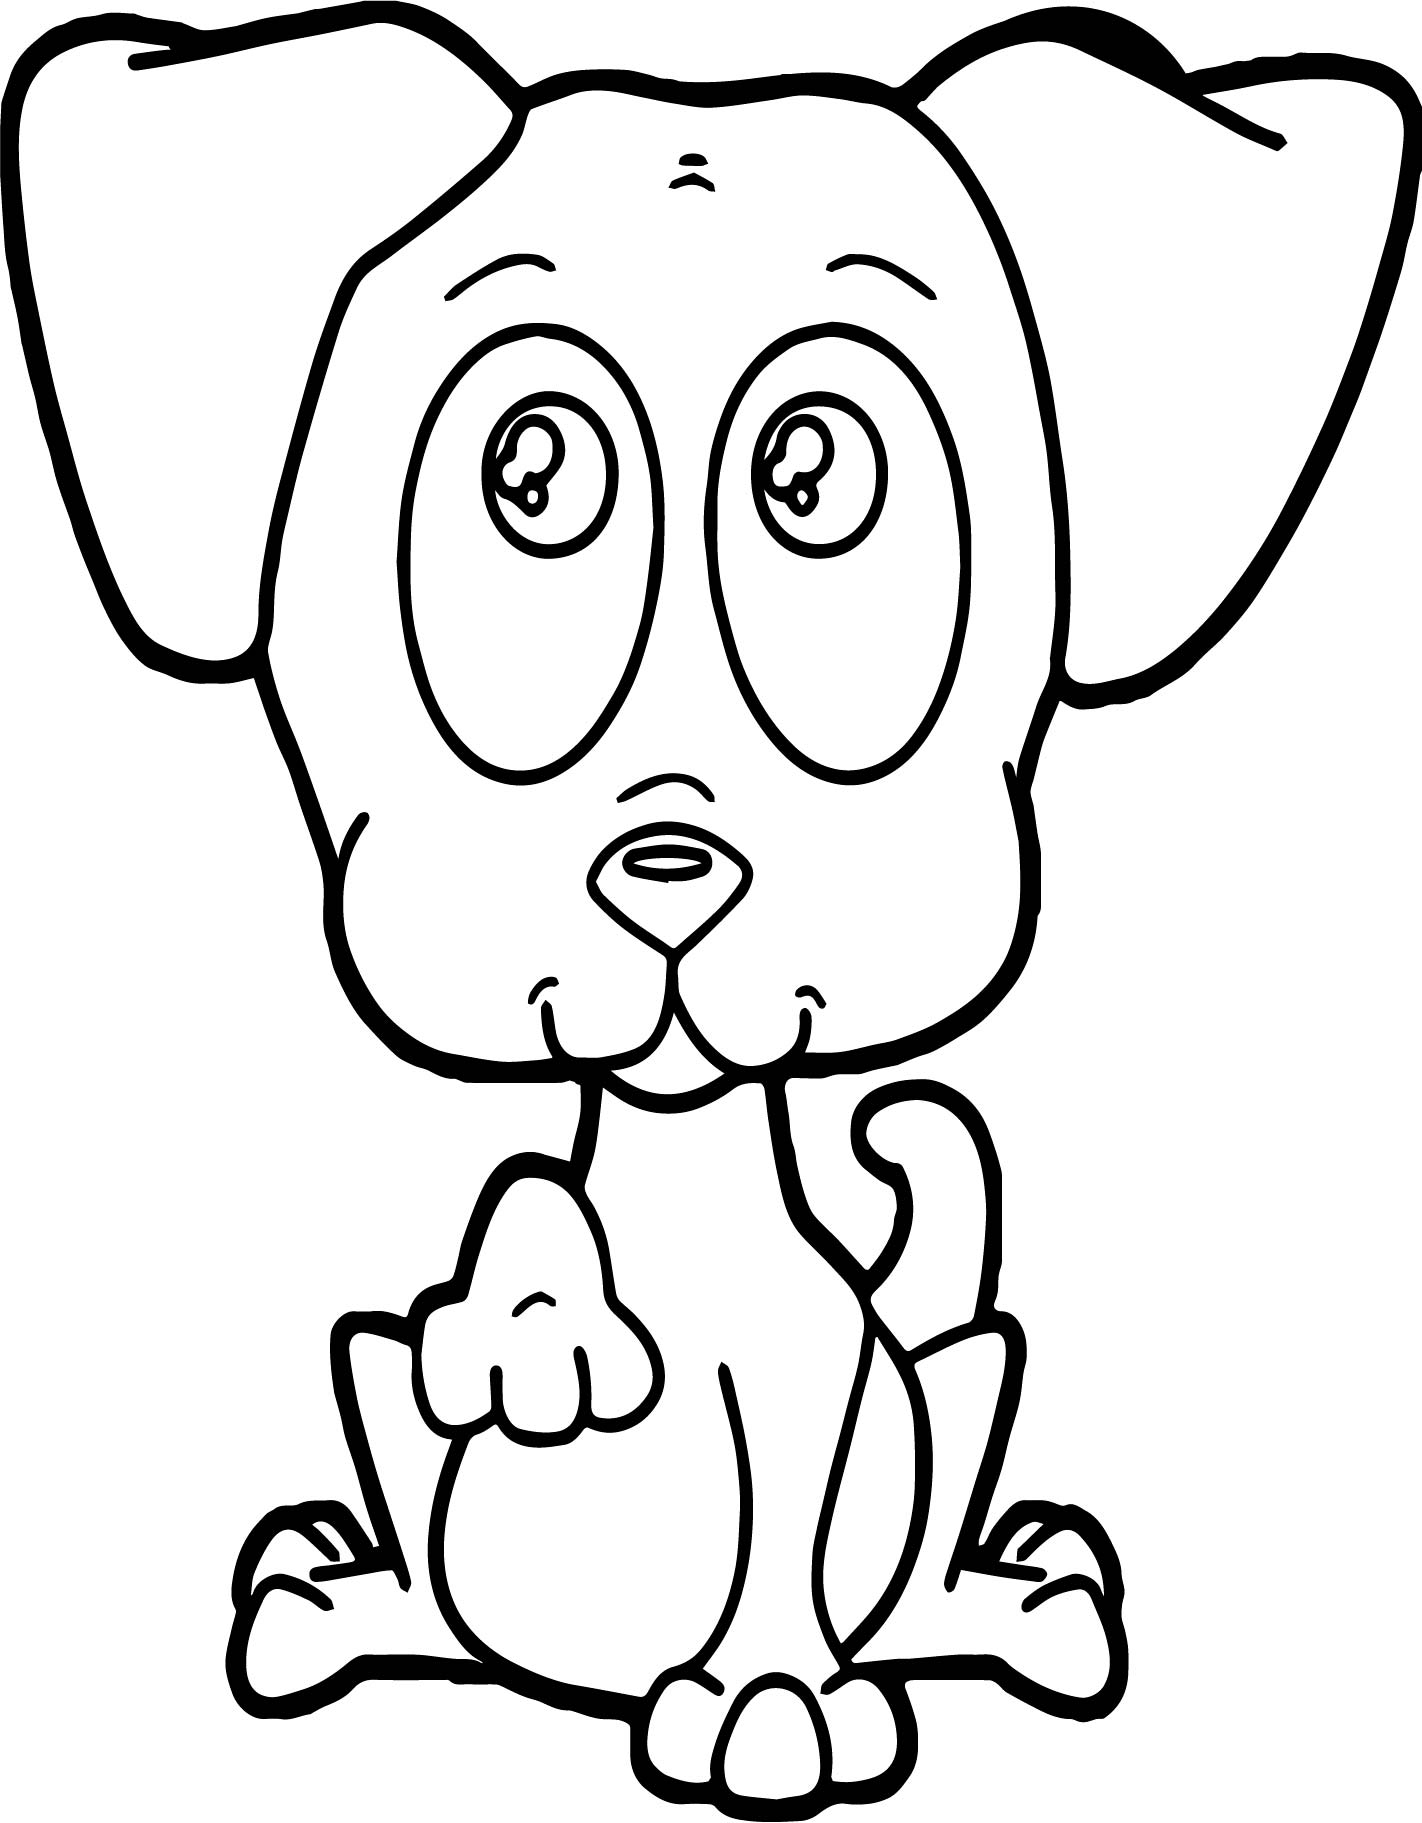 Cute puppy begging puppy dog coloring page for Coloring pages of dogs